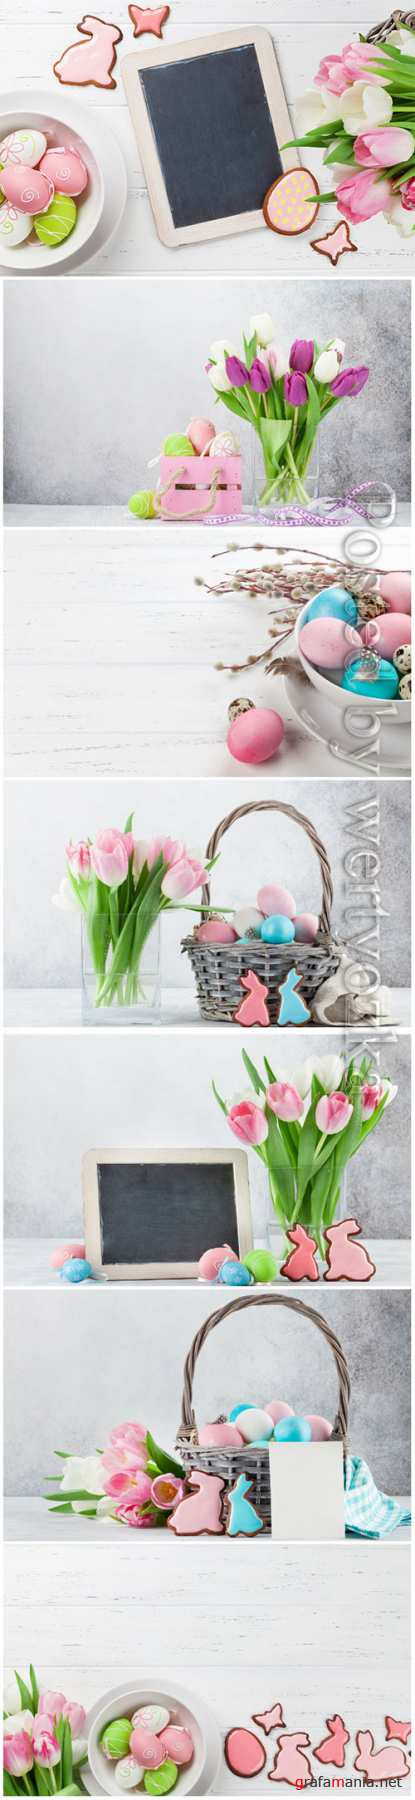 Happy Easter stock photo, Easter eggs, spring flowers